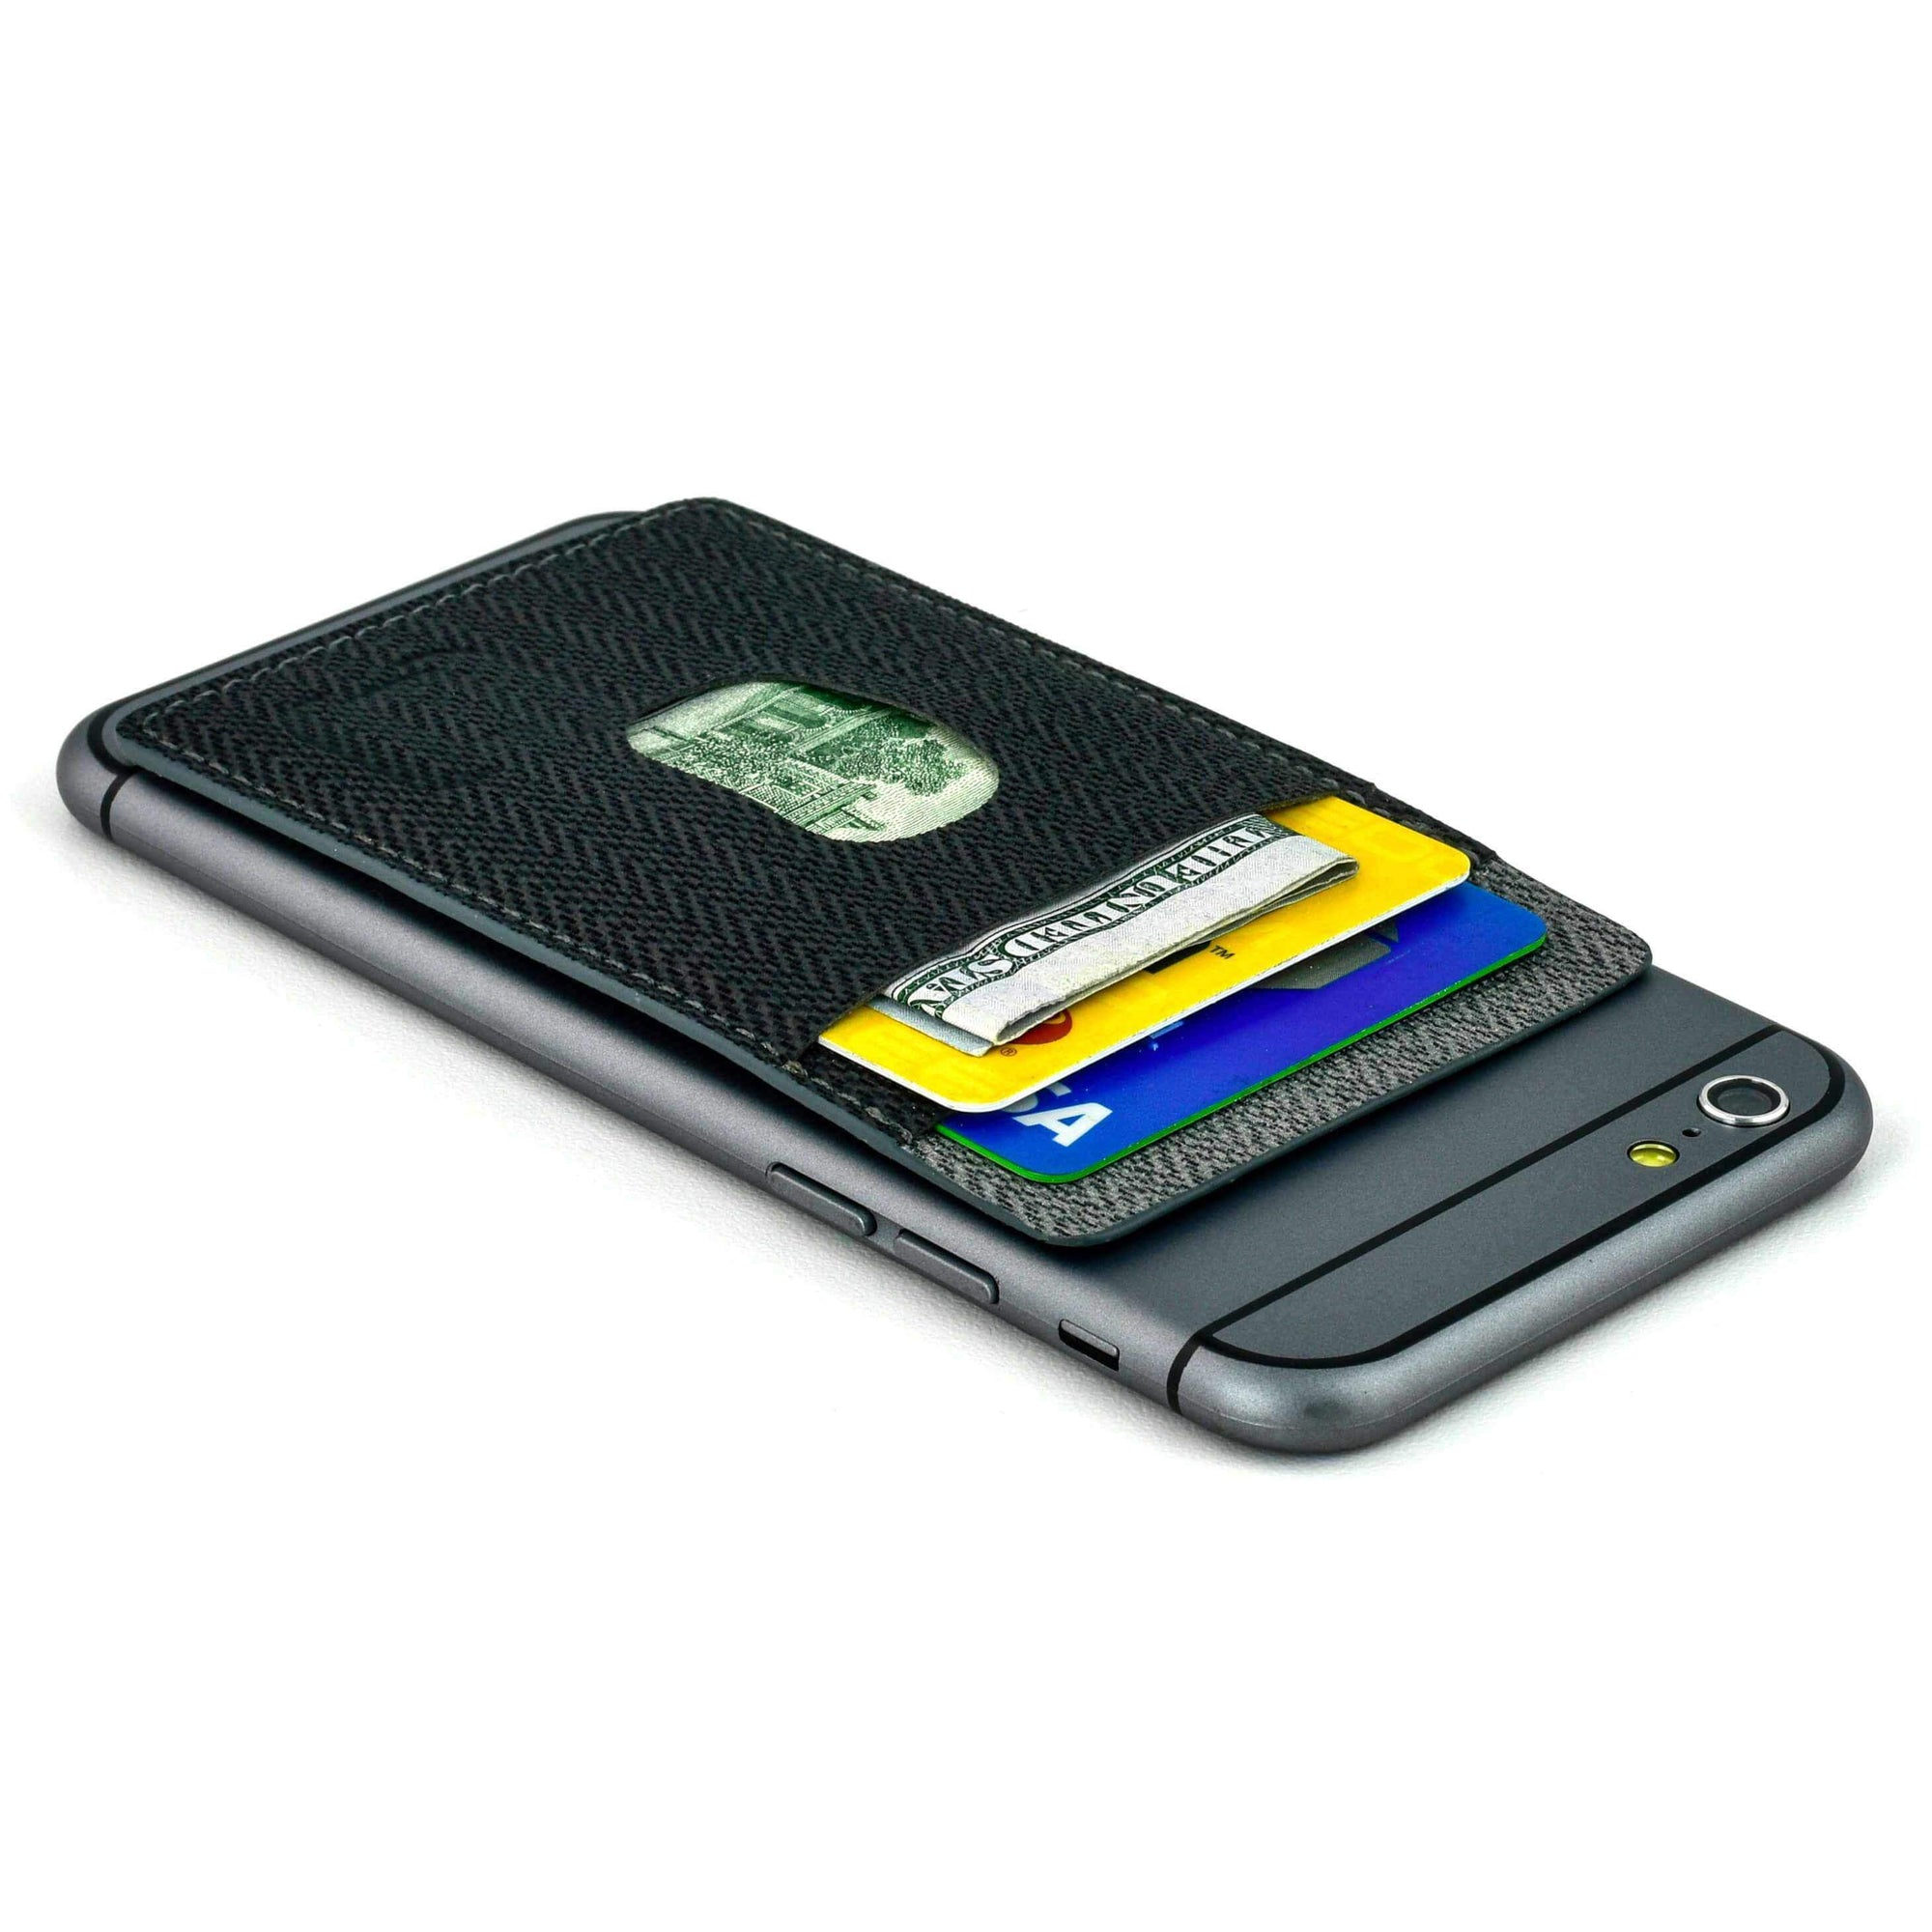 Removable Adhesive Synthetic Leather Wallet for Smartphones Accessories Dockem